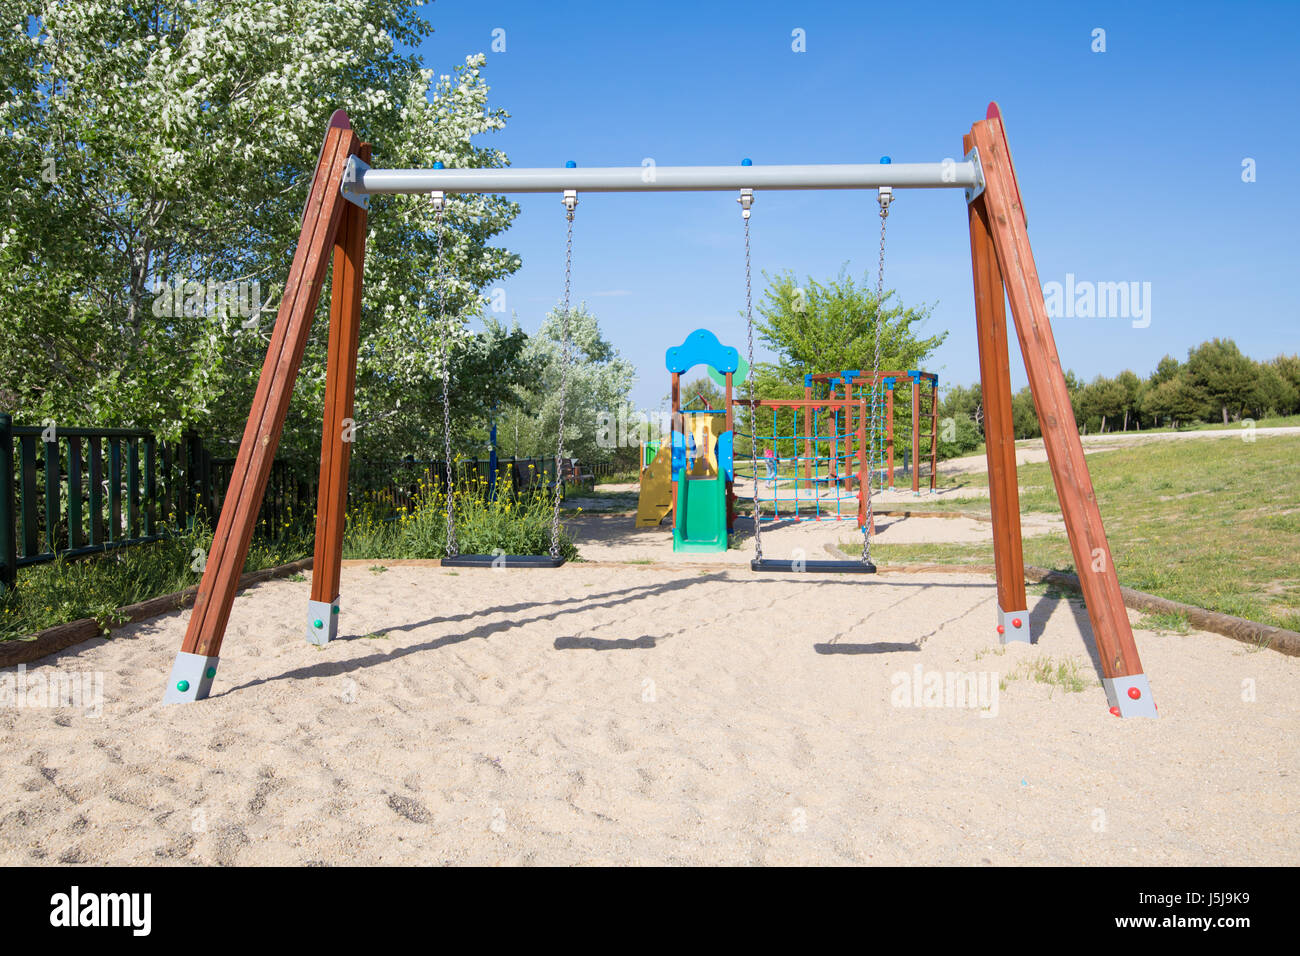 Plastic Two Swing Sets On Earth Sand Ground In Playground With Slide Stock Photo Royalty Free